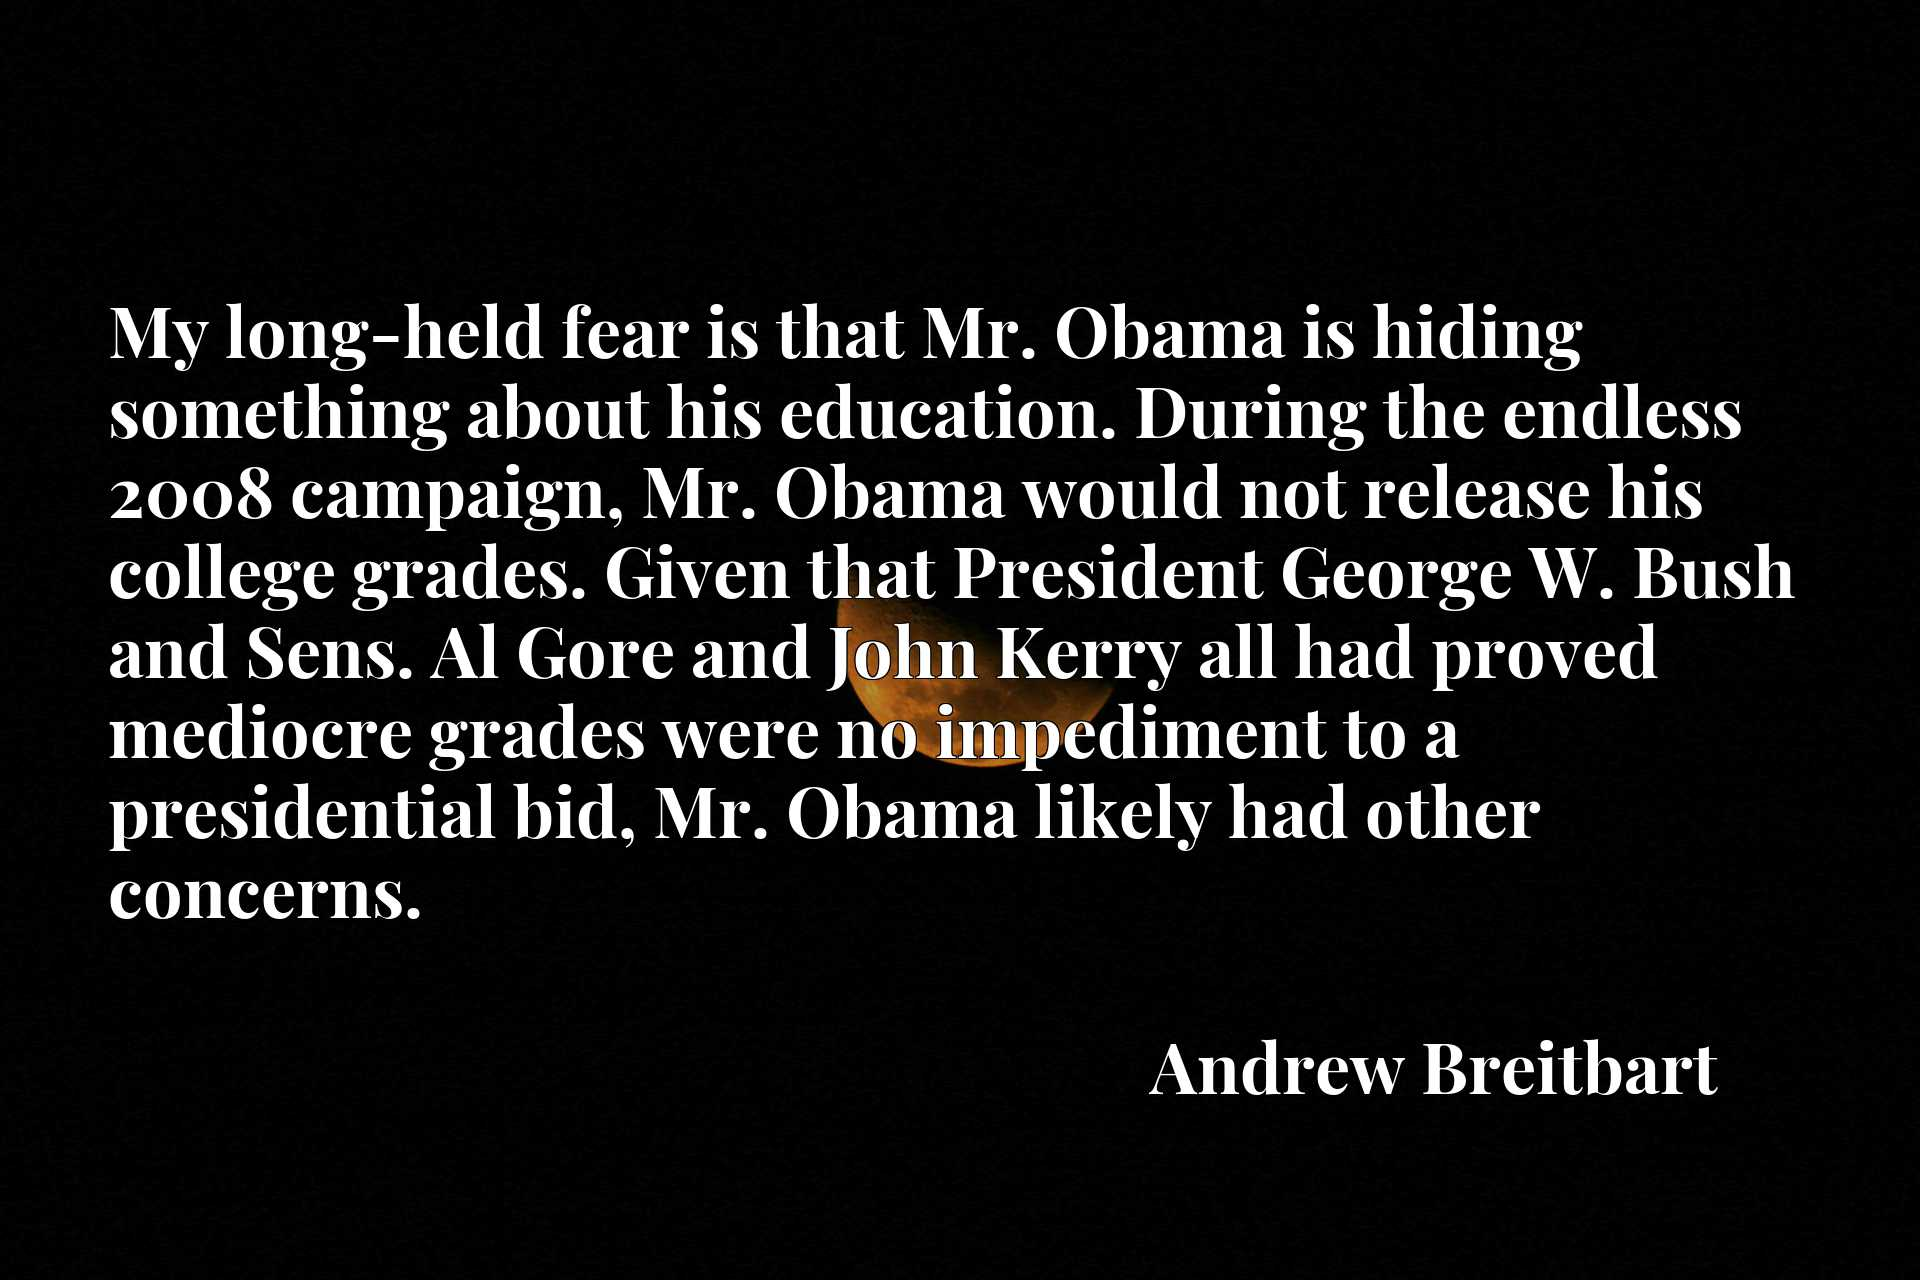 My long-held fear is that Mr. Obama is hiding something about his education. During the endless 2008 campaign, Mr. Obama would not release his college grades. Given that President George W. Bush and Sens. Al Gore and John Kerry all had proved mediocre grades were no impediment to a presidential bid, Mr. Obama likely had other concerns.